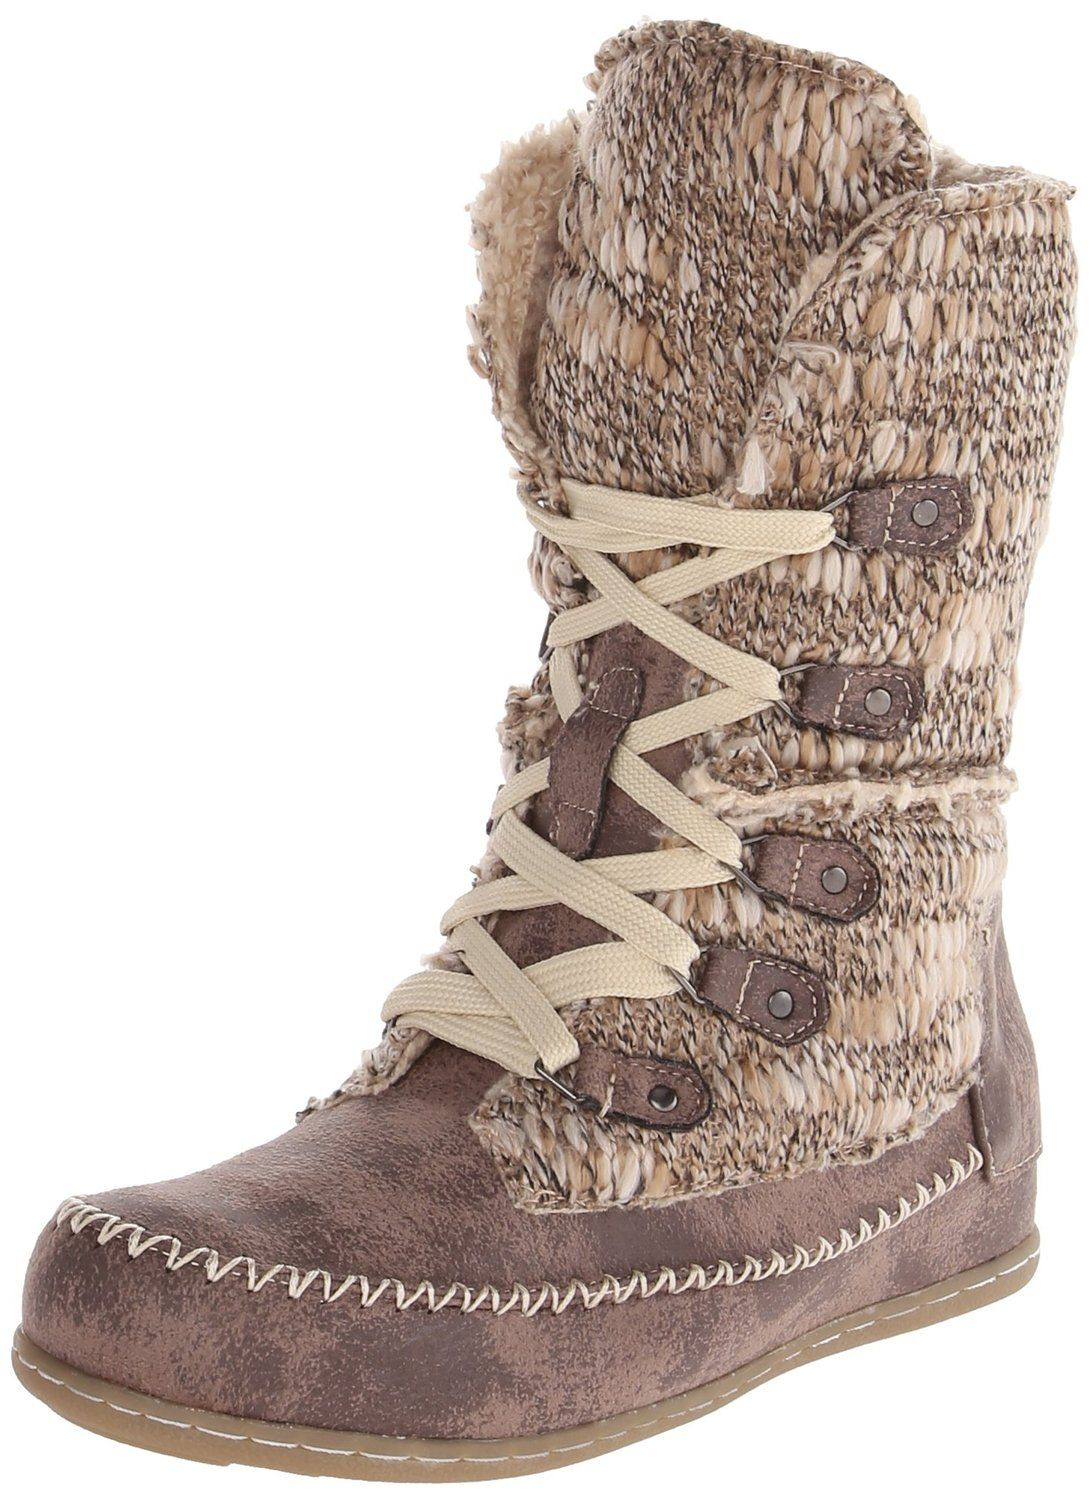 MUK LUKS Lily Women's Lace-up ... Midcalf Boots